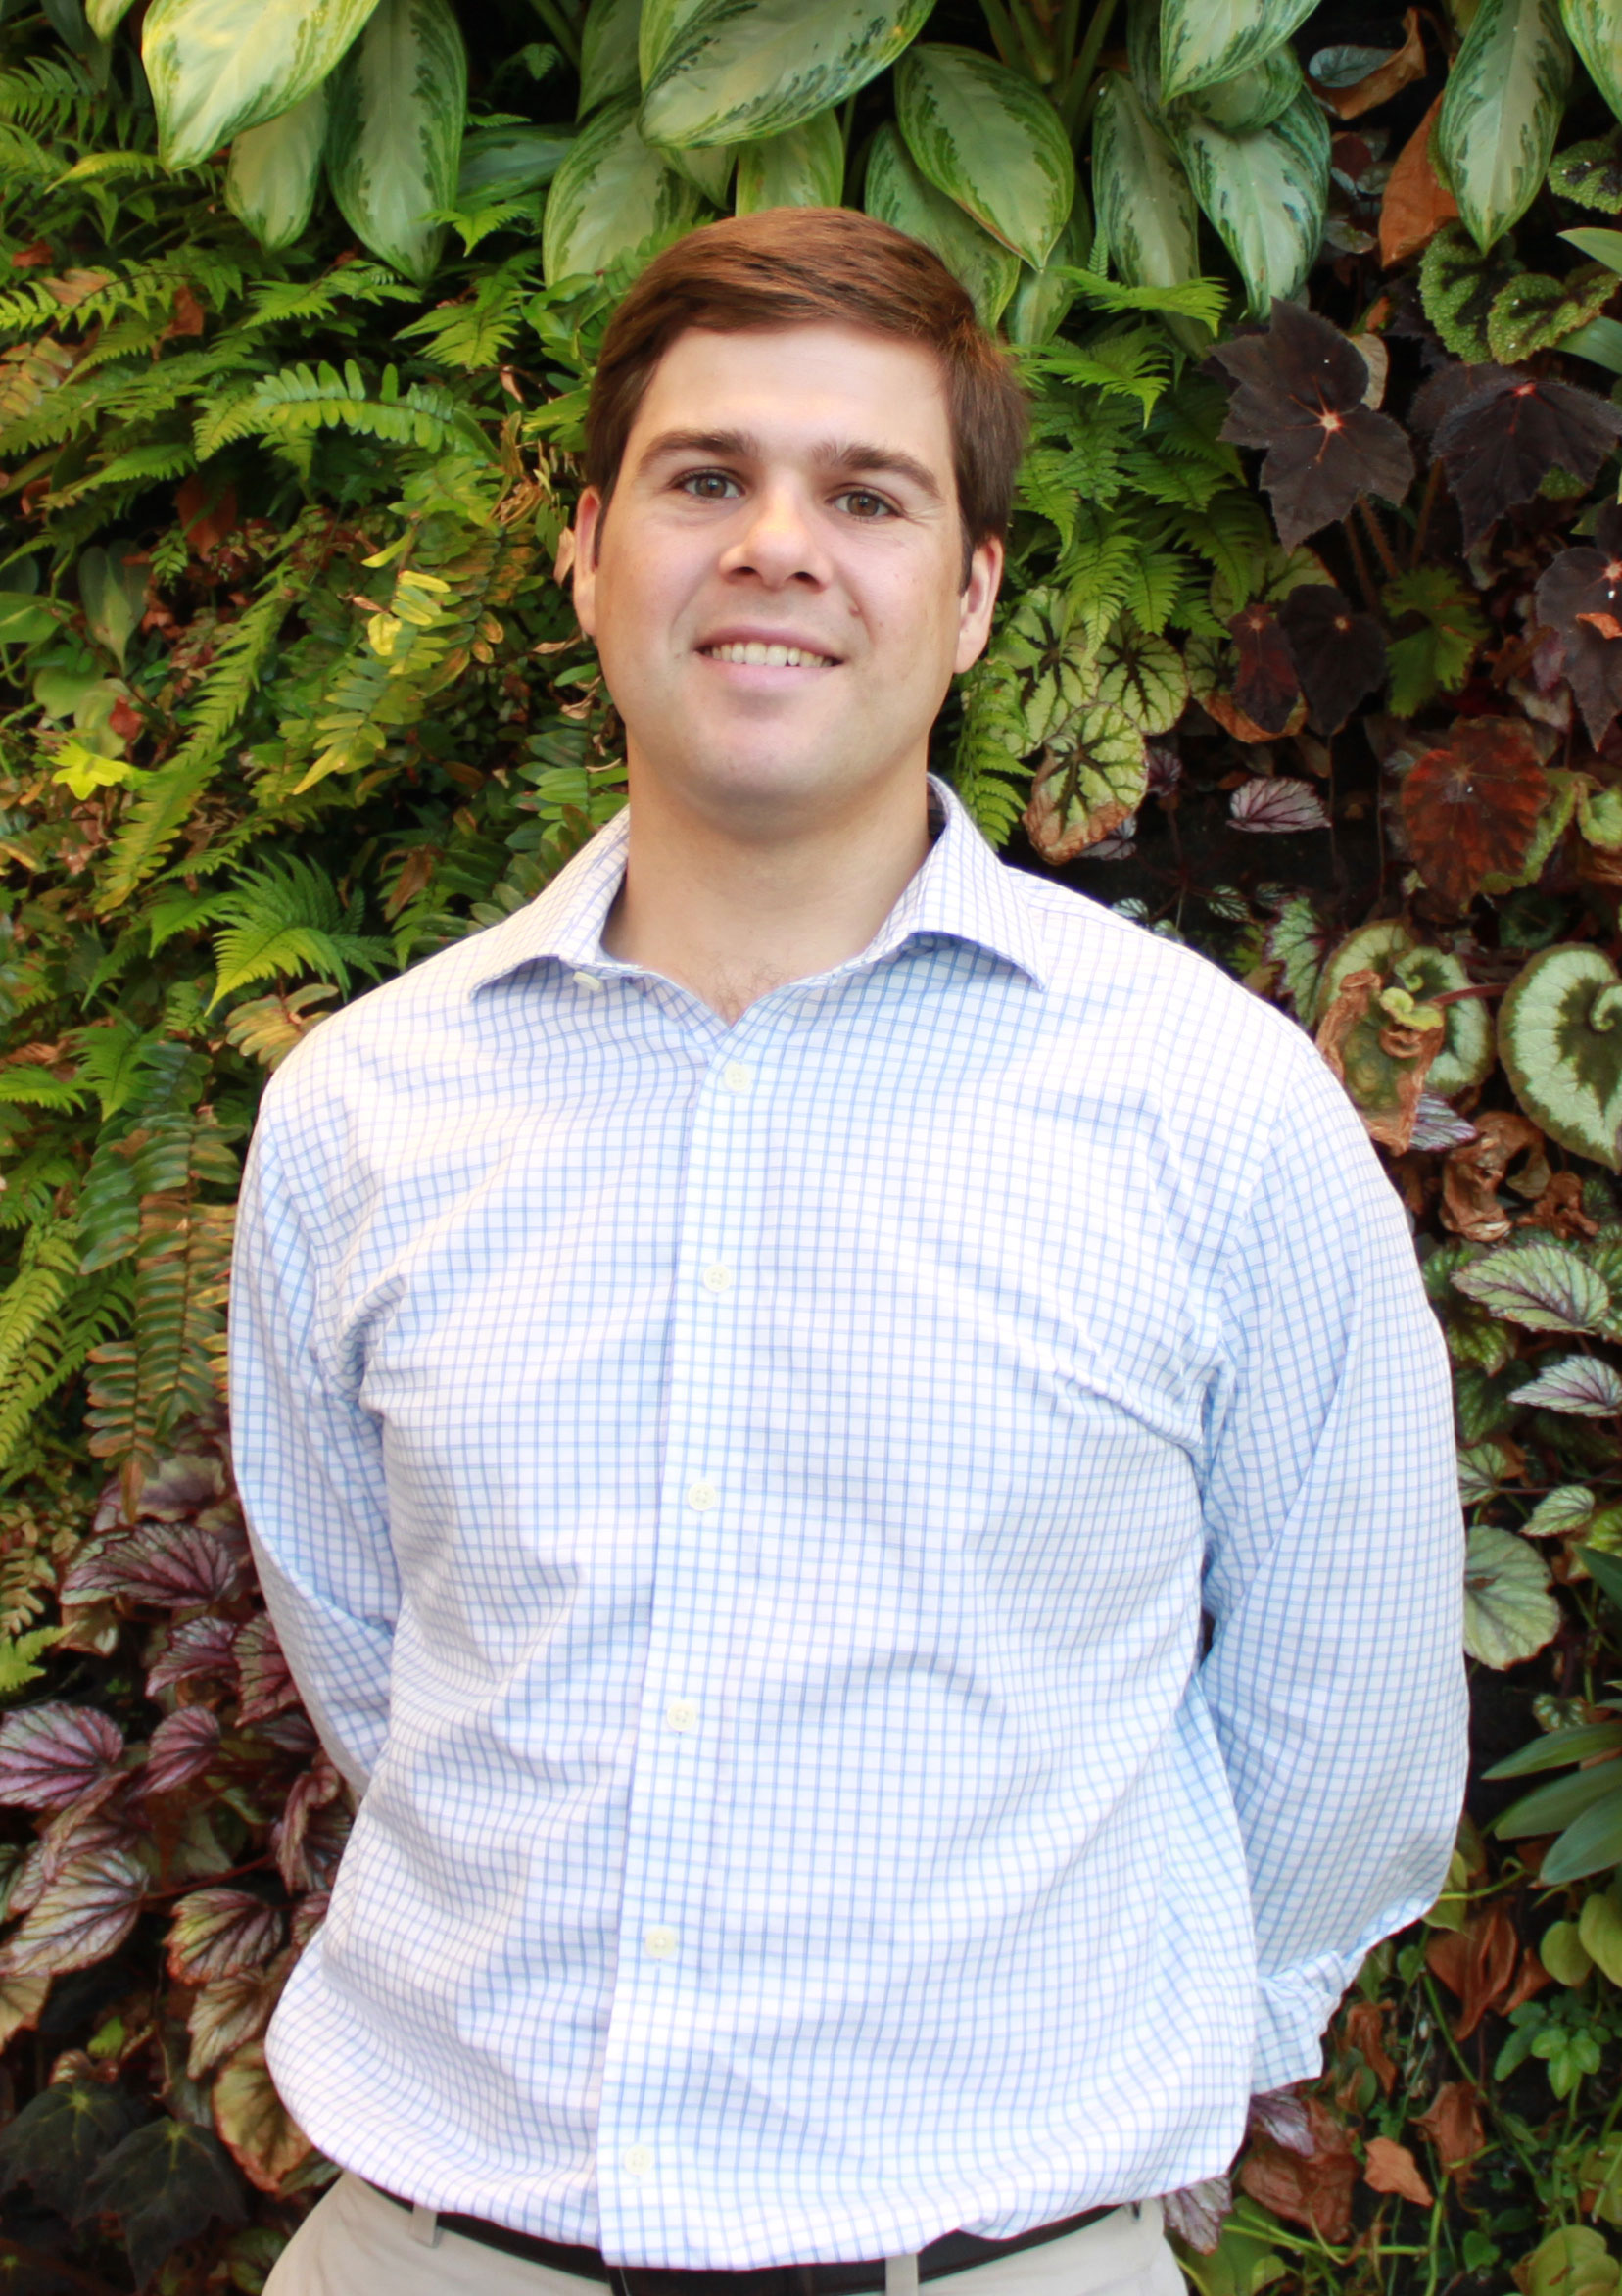 Headshot of USA Rice Manager of Government Affairs Frank Leach in front of living plant wall